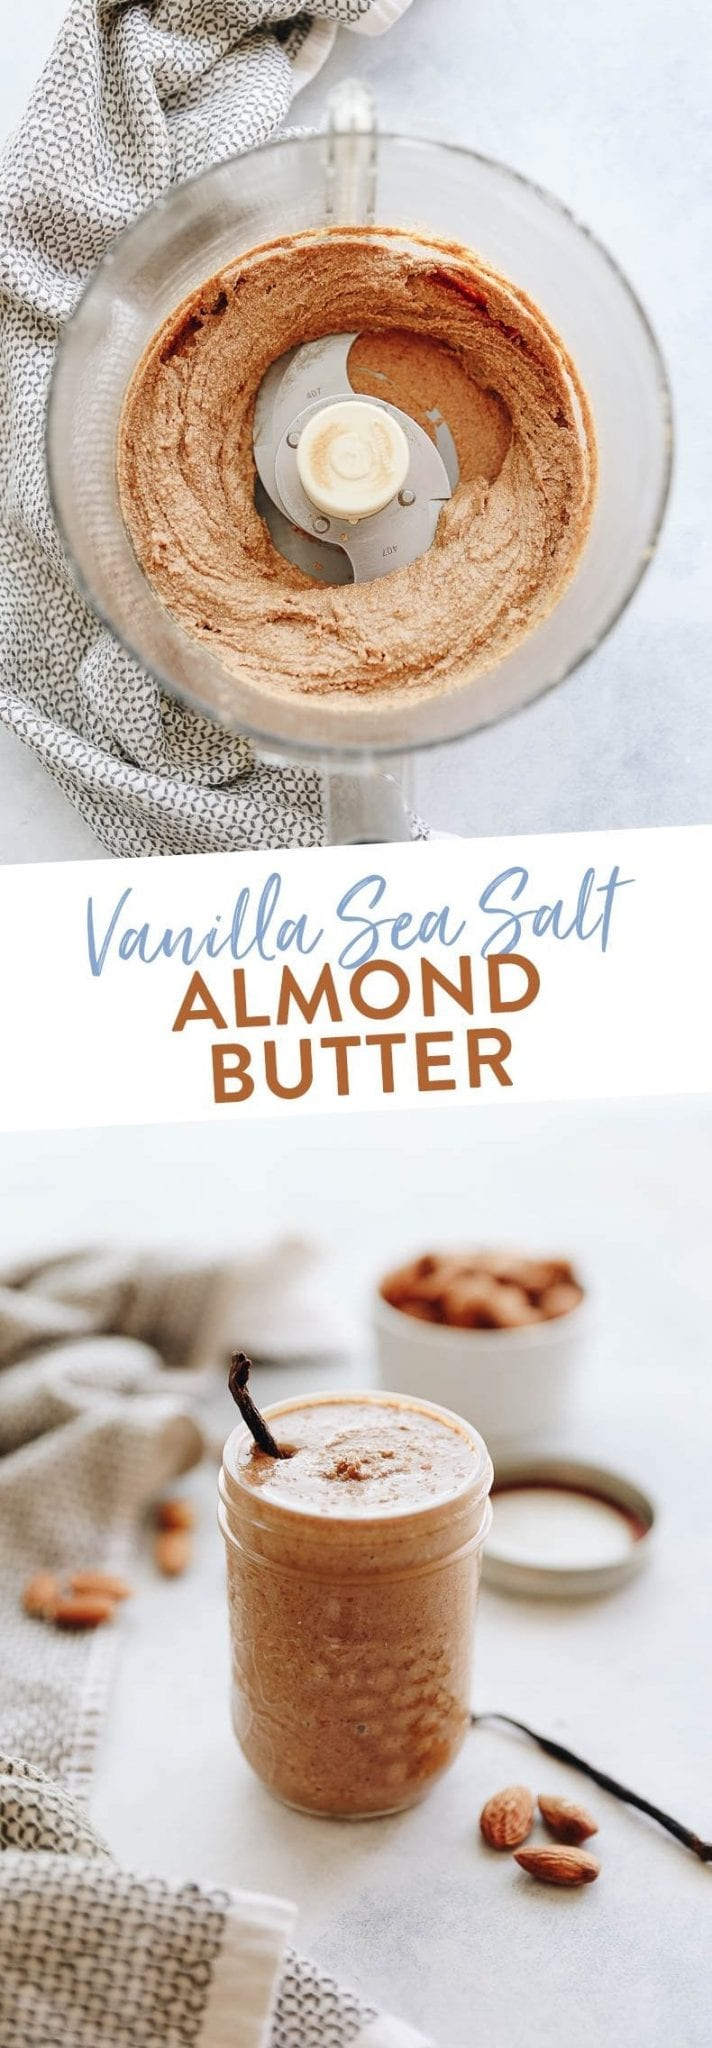 Creamy vanilla sea salt almond butter made with fresh vanilla bean, chunky sea salt and lightly roasted almonds. The perfect spread for your toast, oatmeal or favorite smoothie recipe. Or just eat on its own with a spoon!